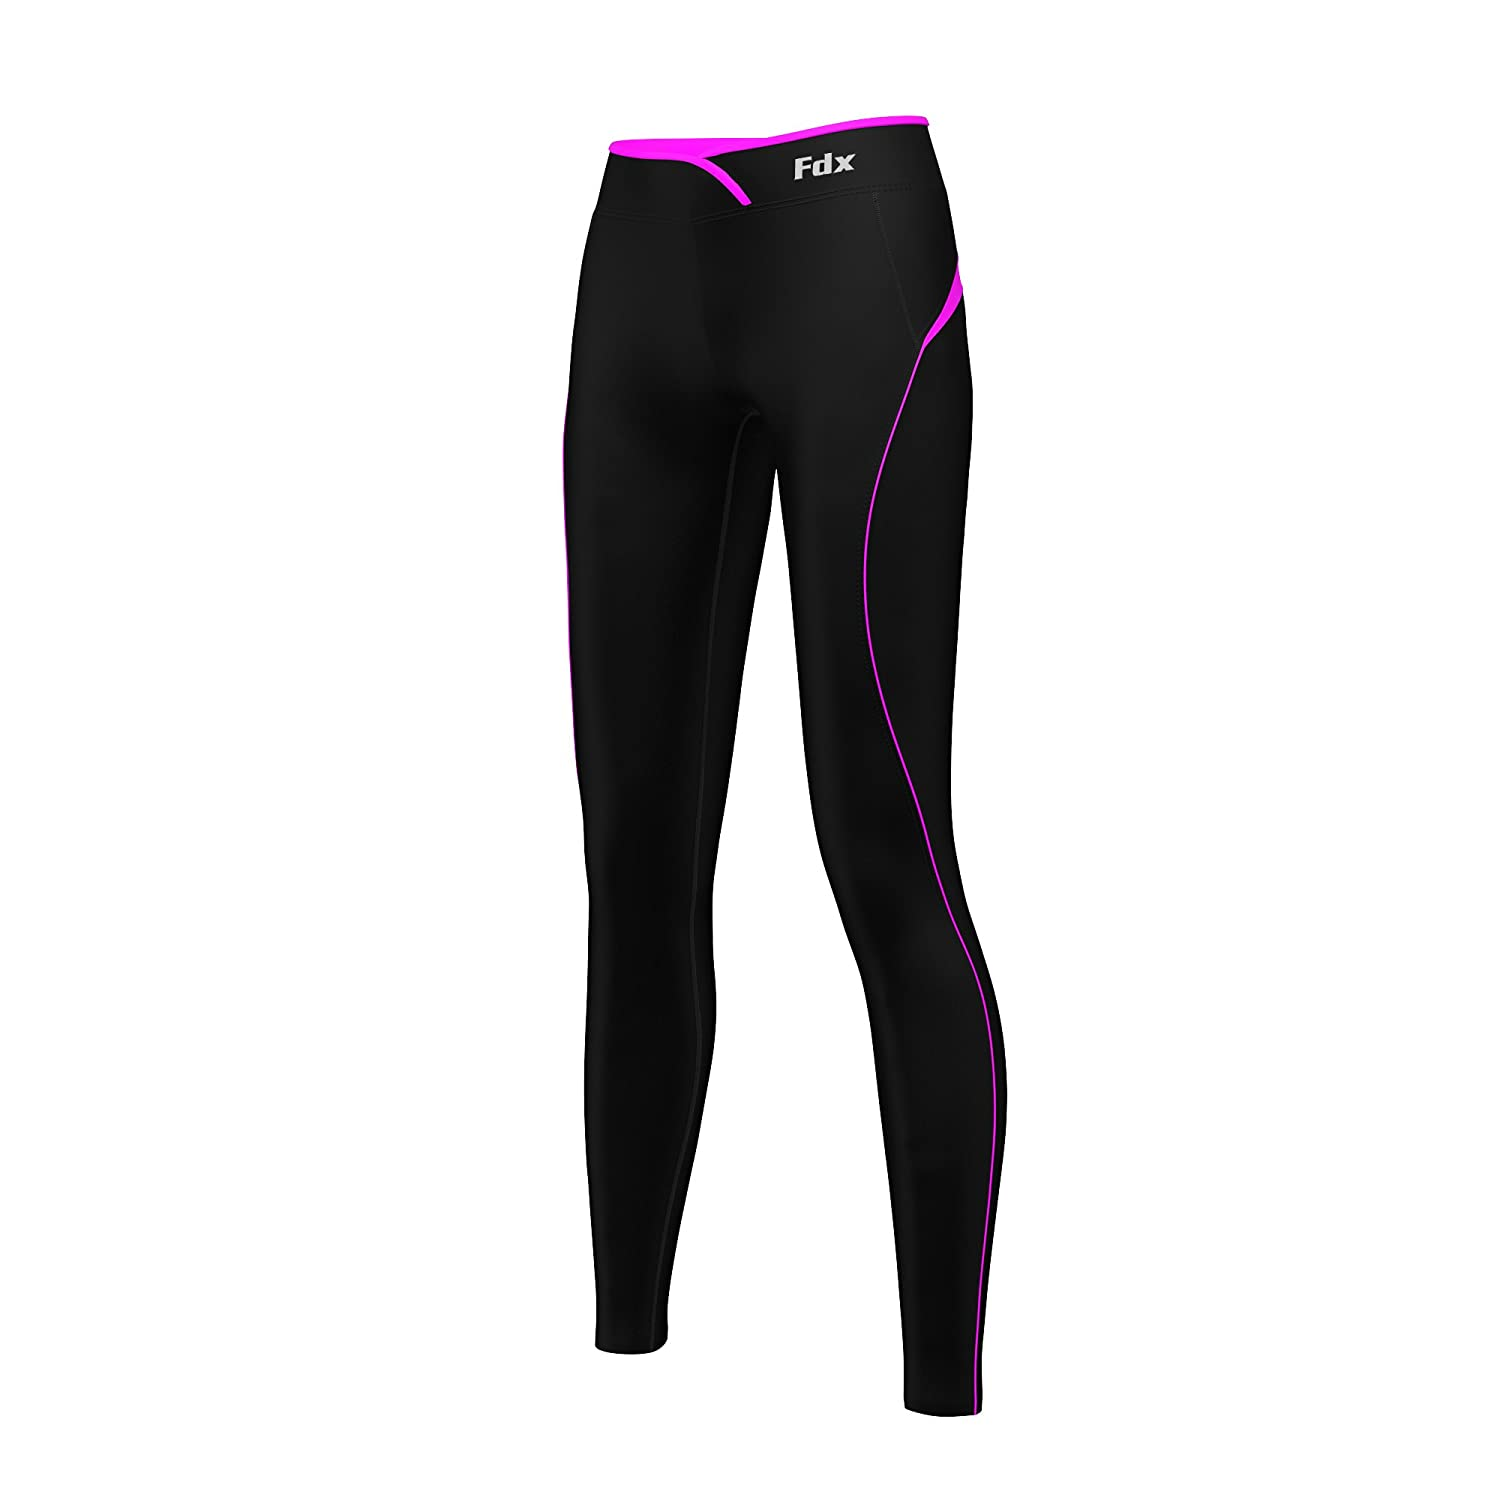 FDX Women Super Thermal Base Layer Compression Leggings Fitness Running tights Gym Pants FDX-1200-80